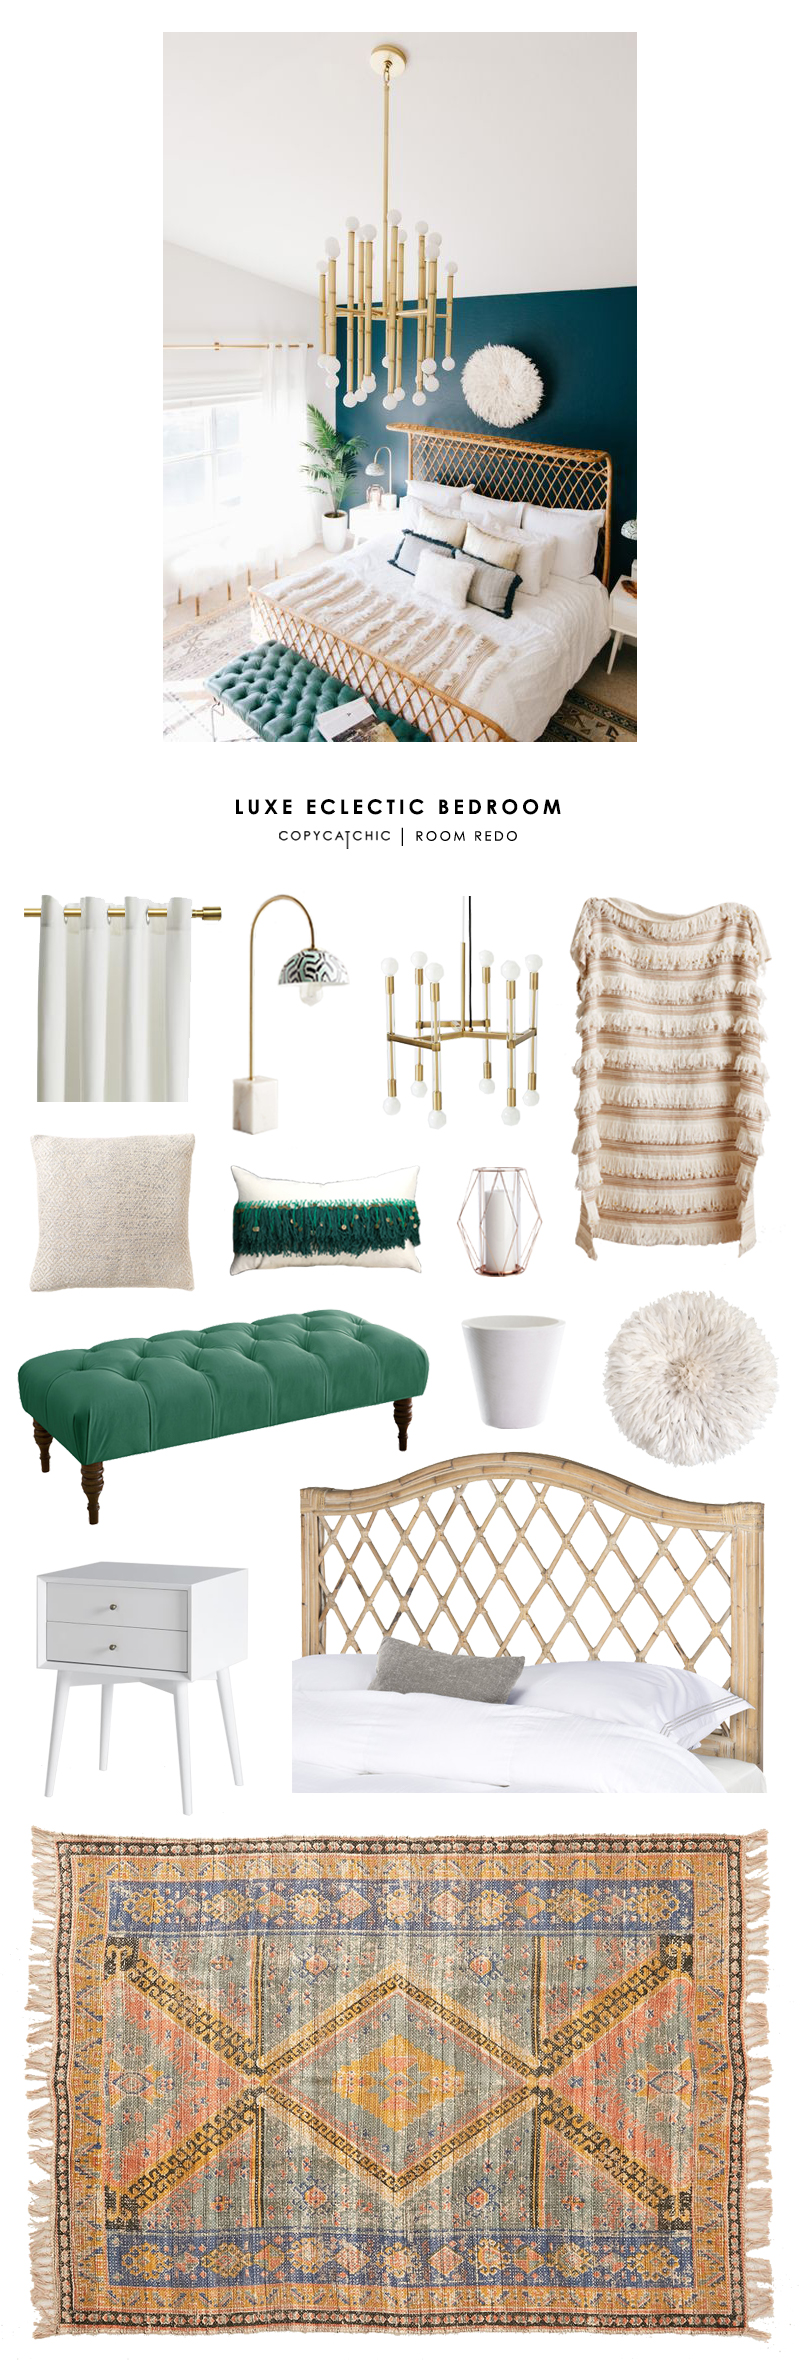 copy cat chic room redo | luxe eclectic bedroom - copycatchic